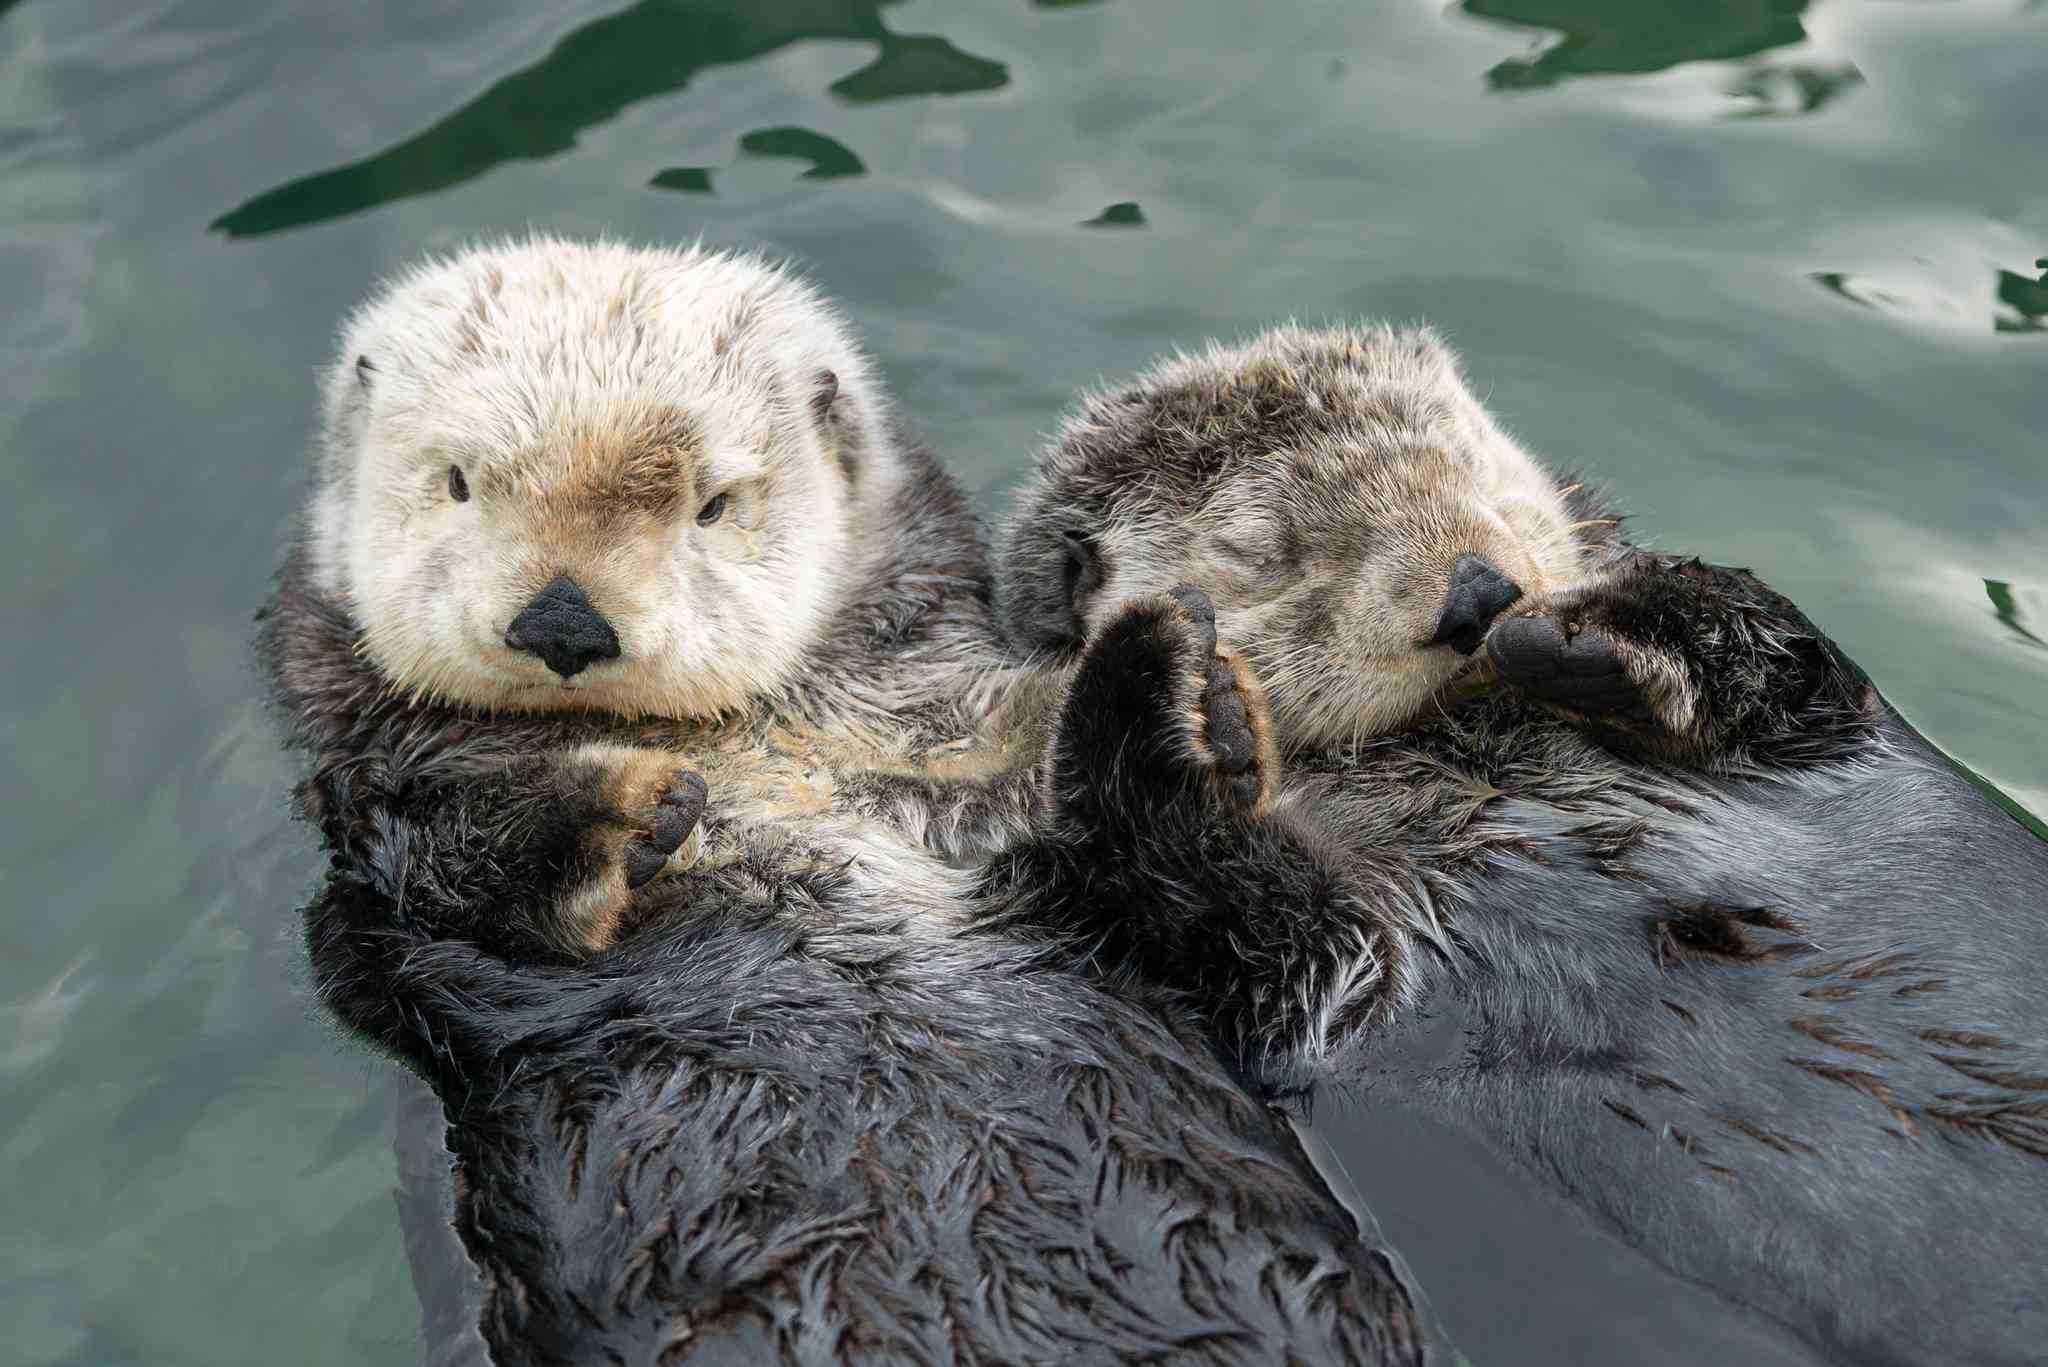 Screenshot of otters holding hands from viral video